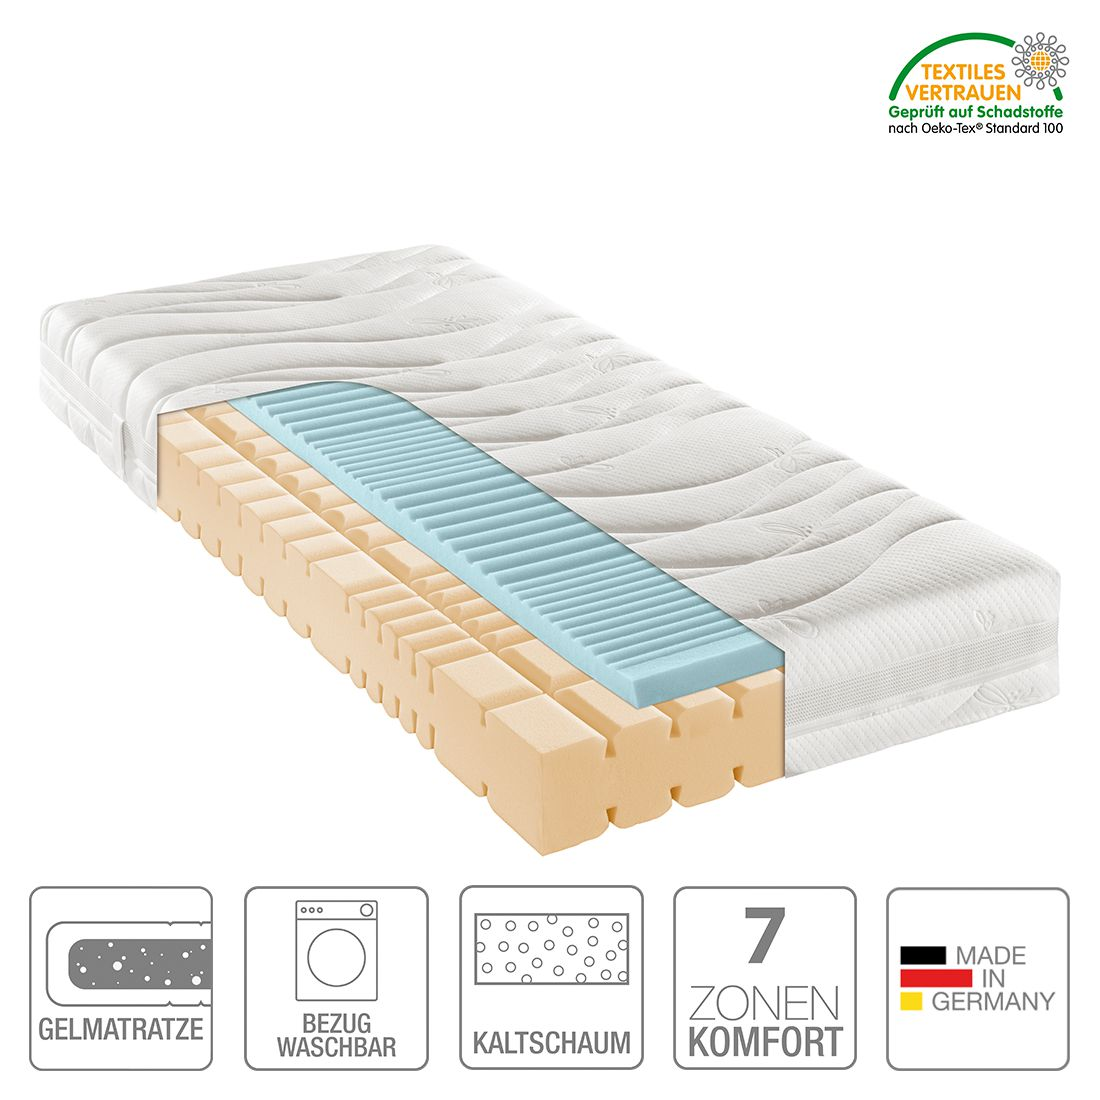 7-Zonen Kaltschaummatratze Nova Dream Gel Royal – 90 x 190cm – H3 ab 80 kg, Nova Dream Sleepline online kaufen